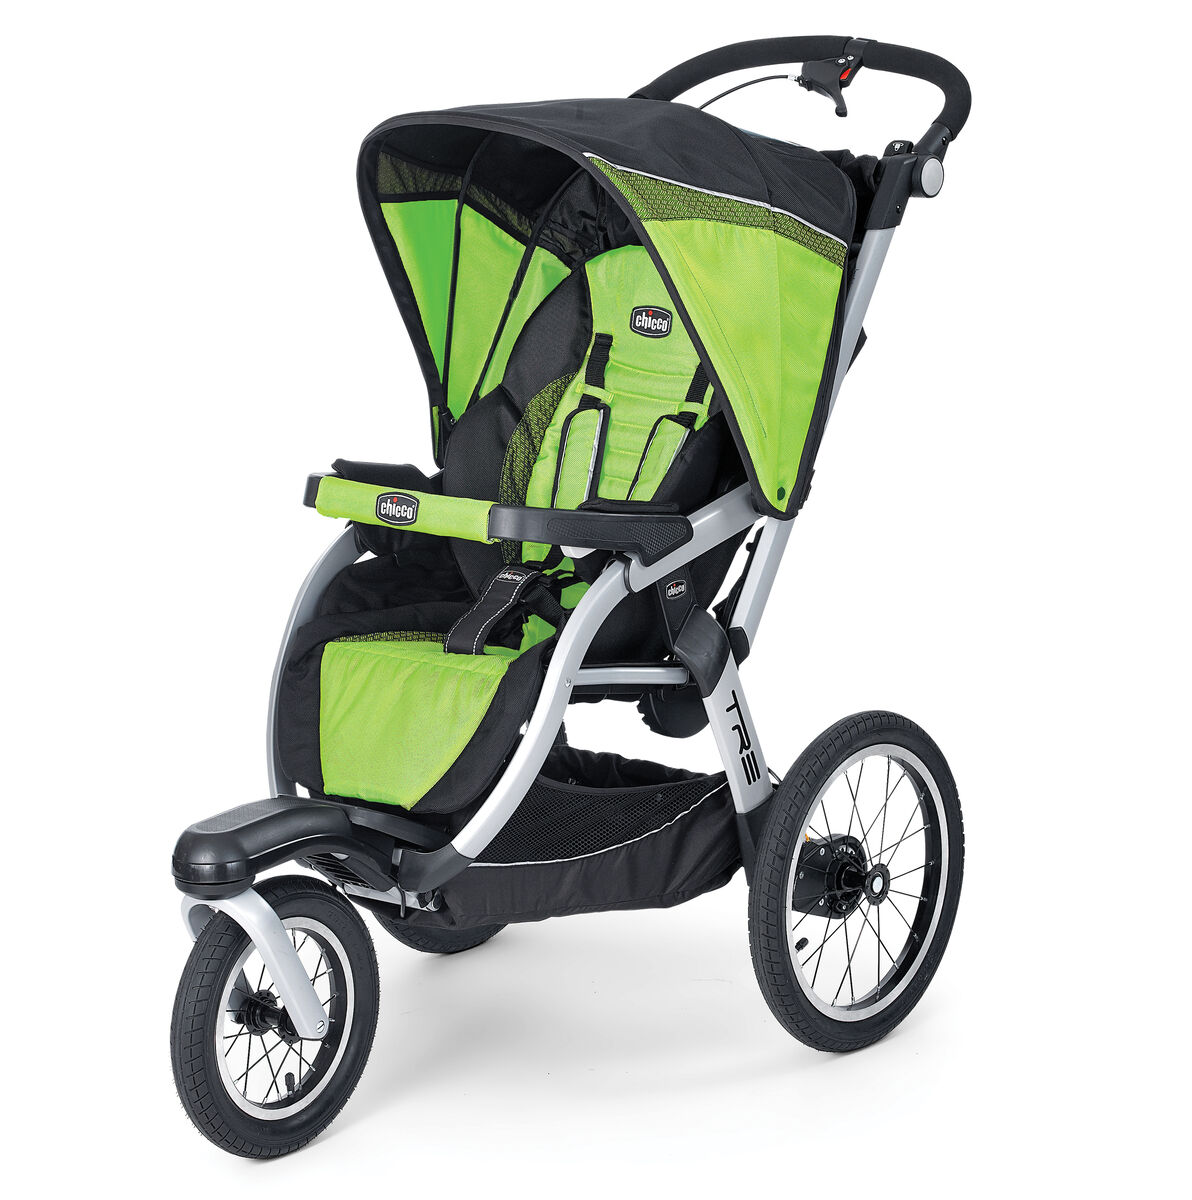 2028 Doll Stroller For 6 Year Old moreover 4101 besides Fisher Price Safe Voyage Convertible Car Seat in addition 5600000 furthermore What To Buy For Baby. on car seat convertible stroller